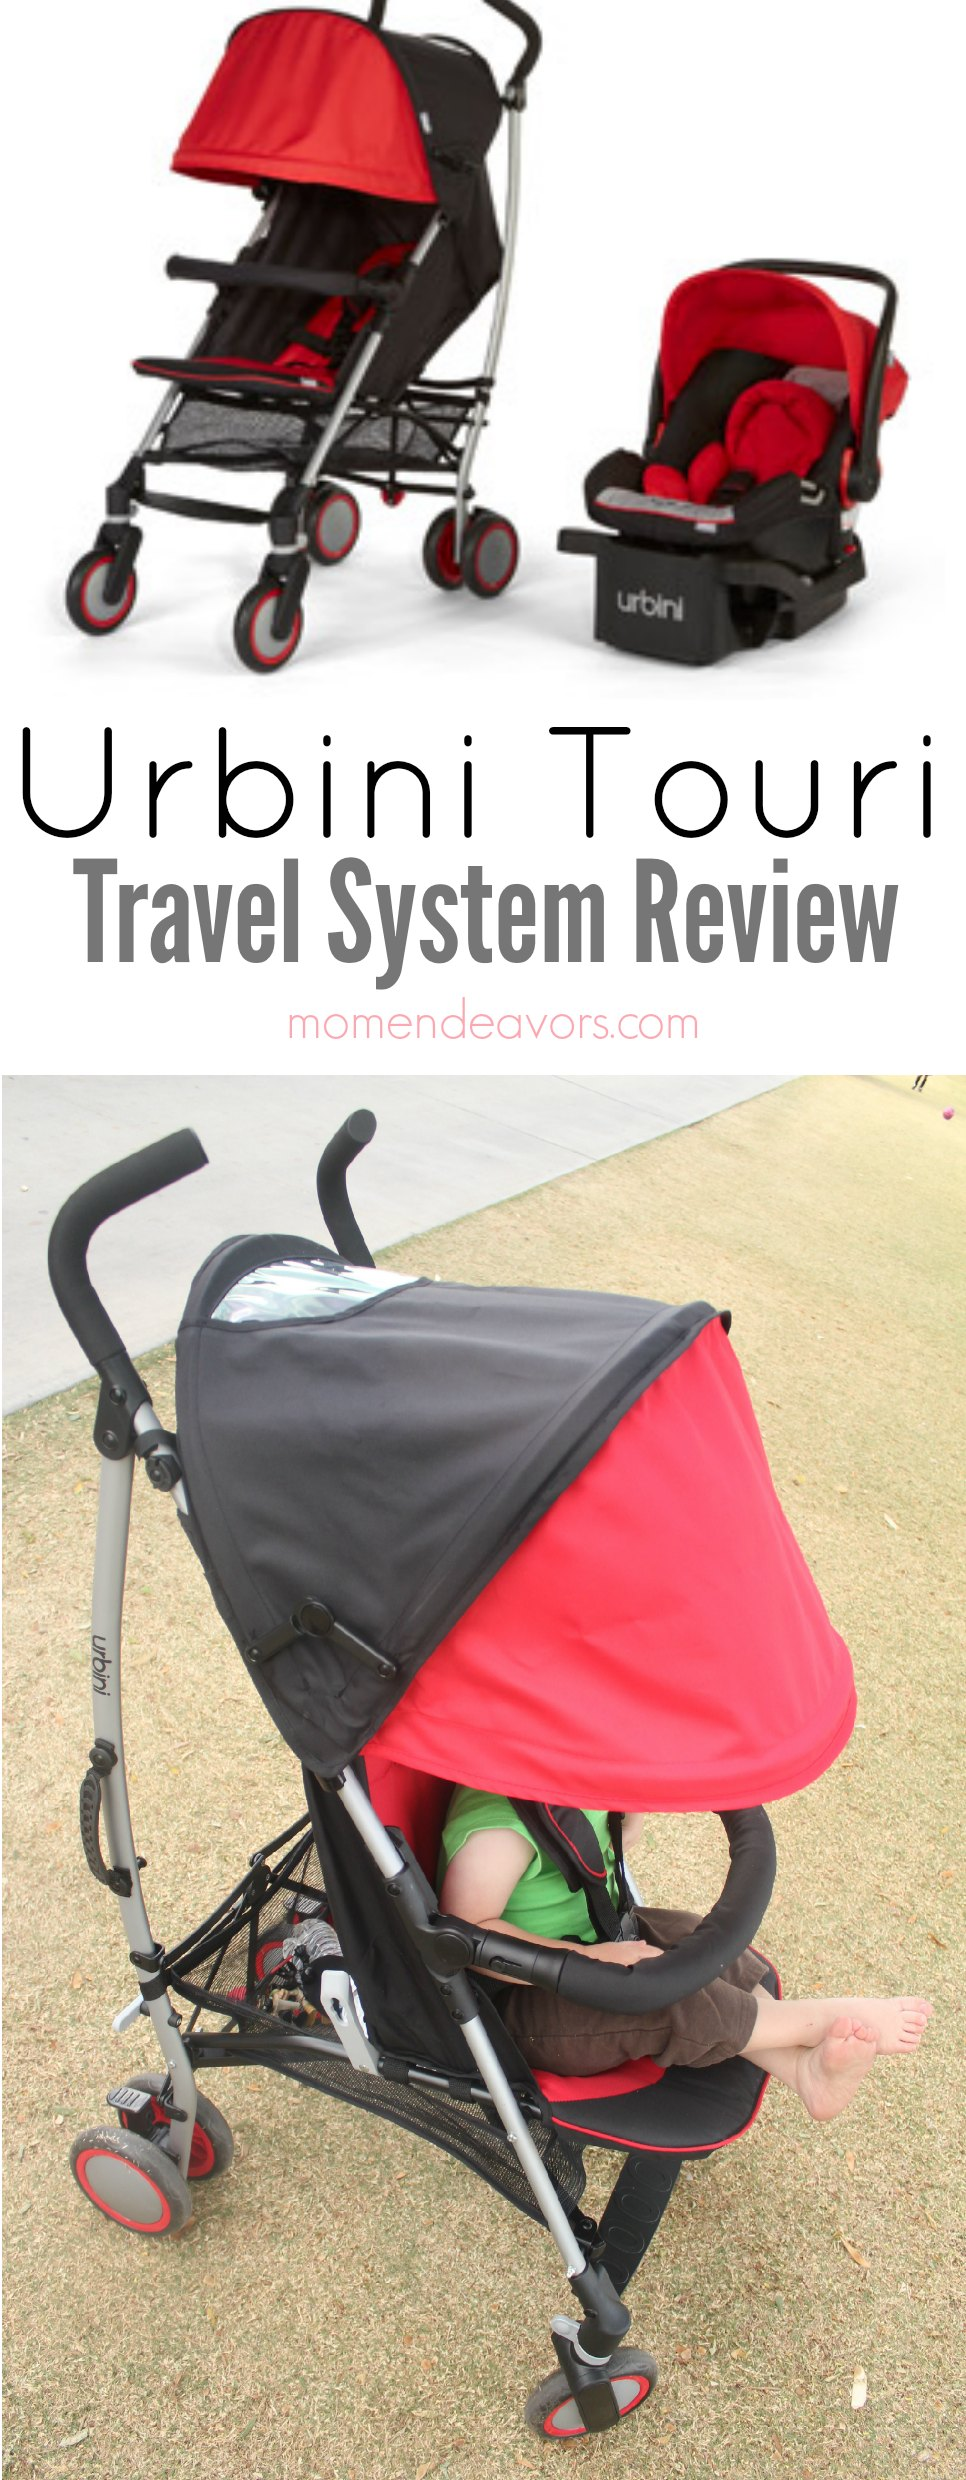 Urbini Touri Travel System Review